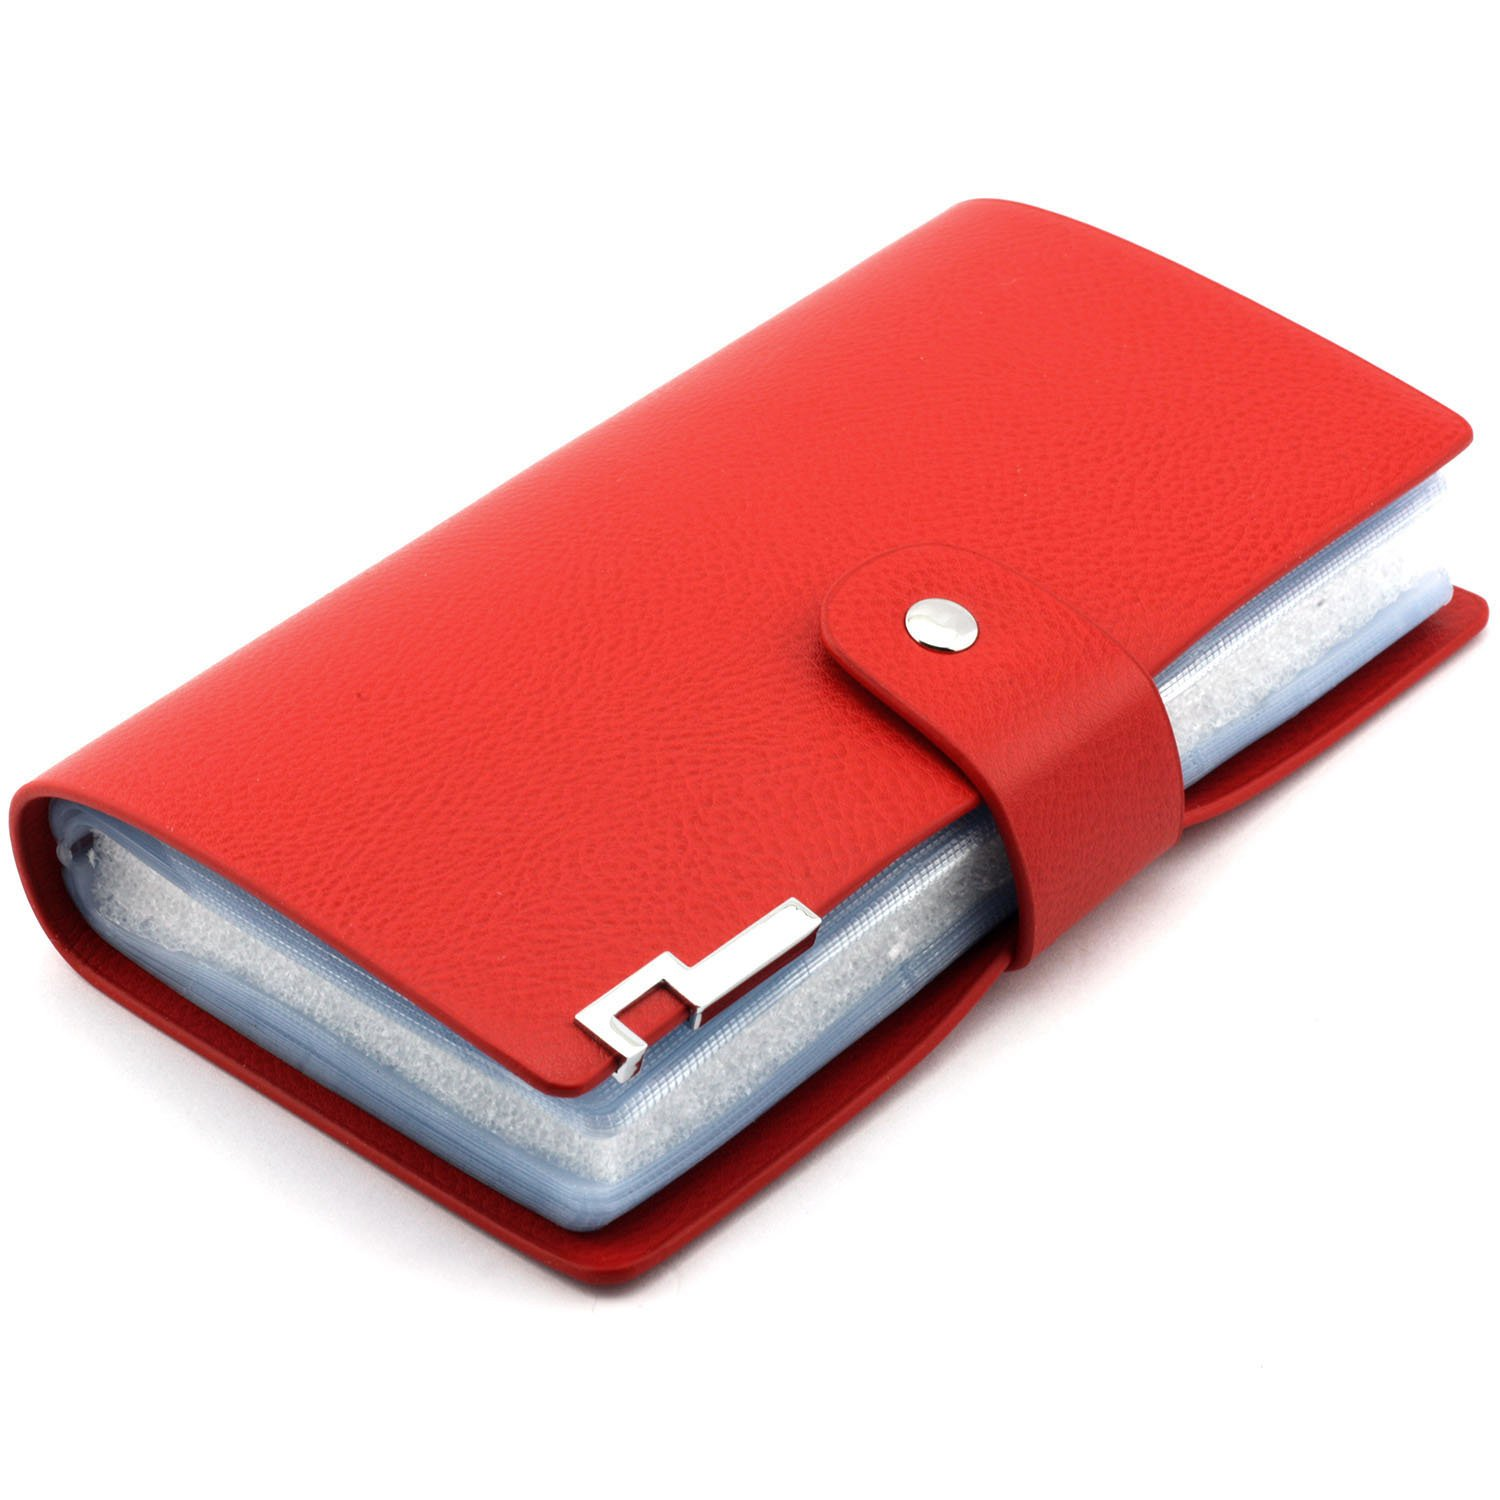 Longdex Soft Leather Business Name Card Holder Book with 102 Card Slots Credit Card Holder Wallet (Red)